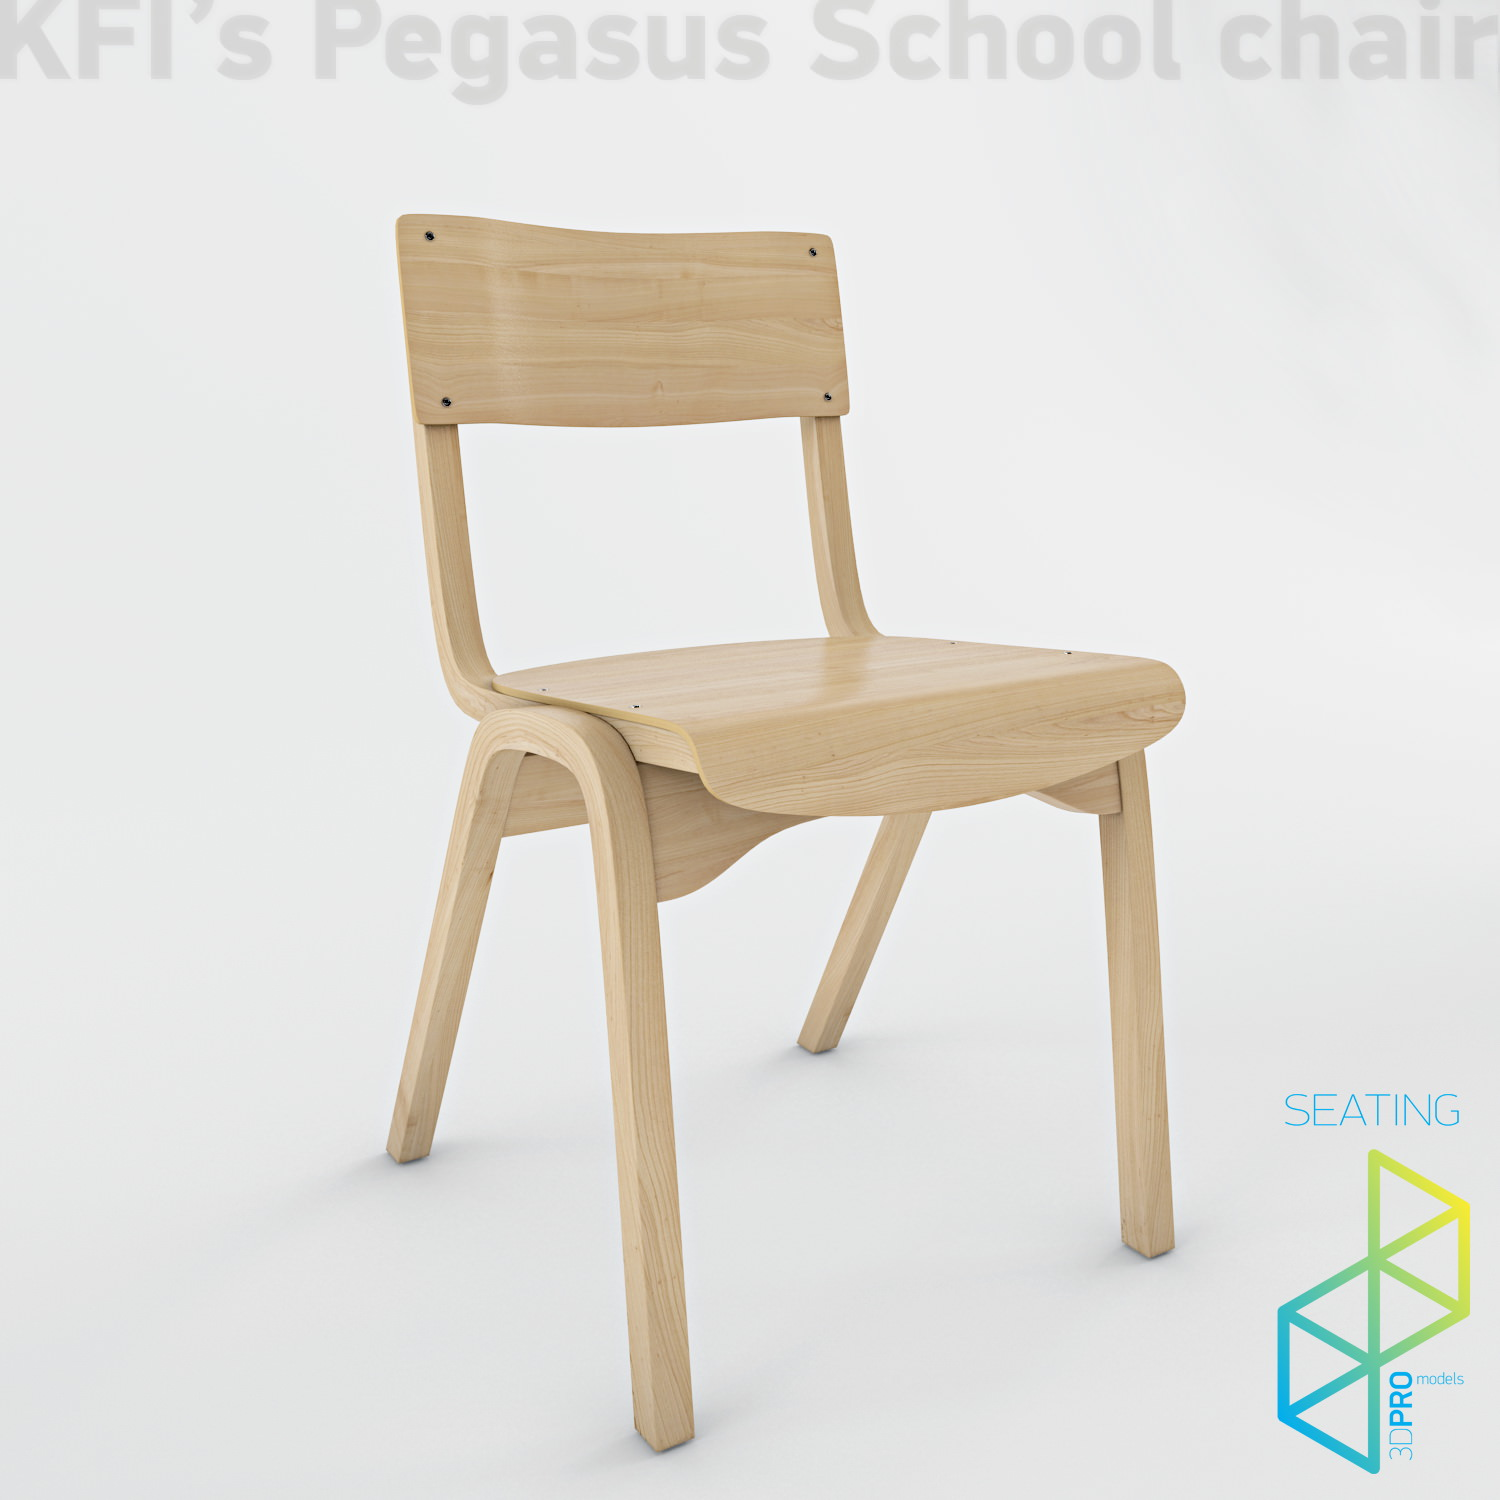 of school crazy sedie art picture seven chairs scuola sette chair